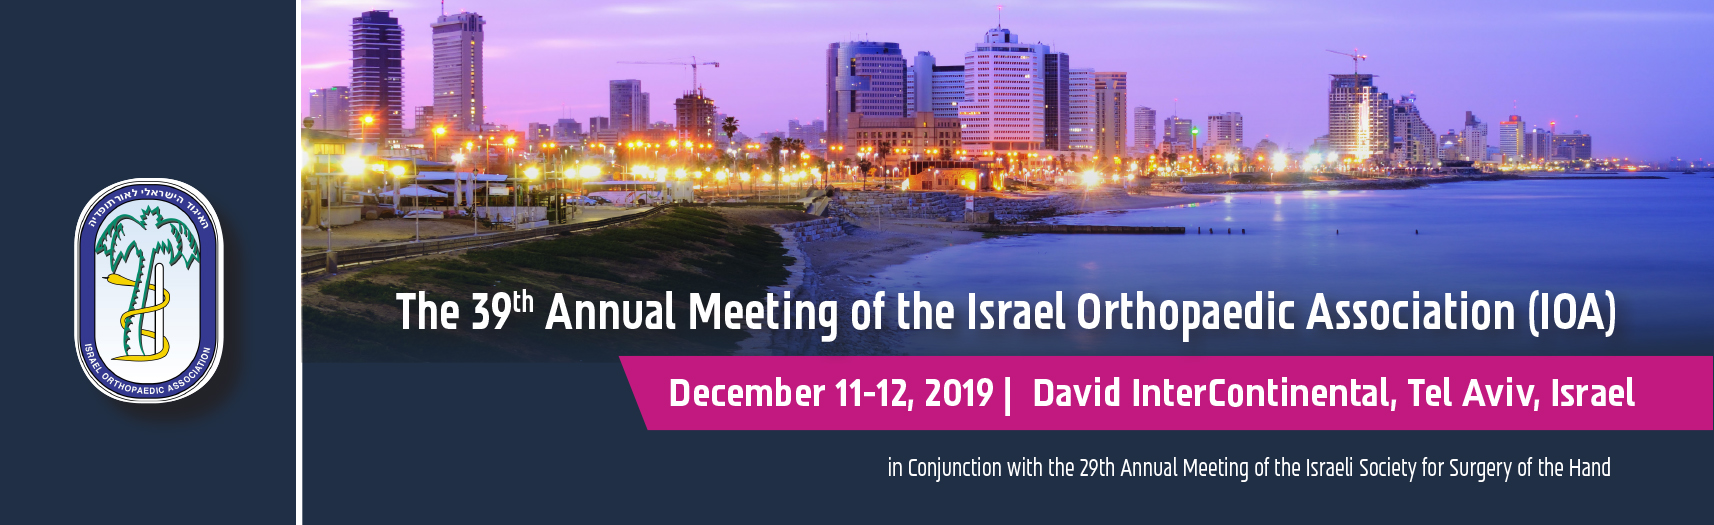 The 39th Annual Meeting of the Israeli Orthopaedics  Association 2019